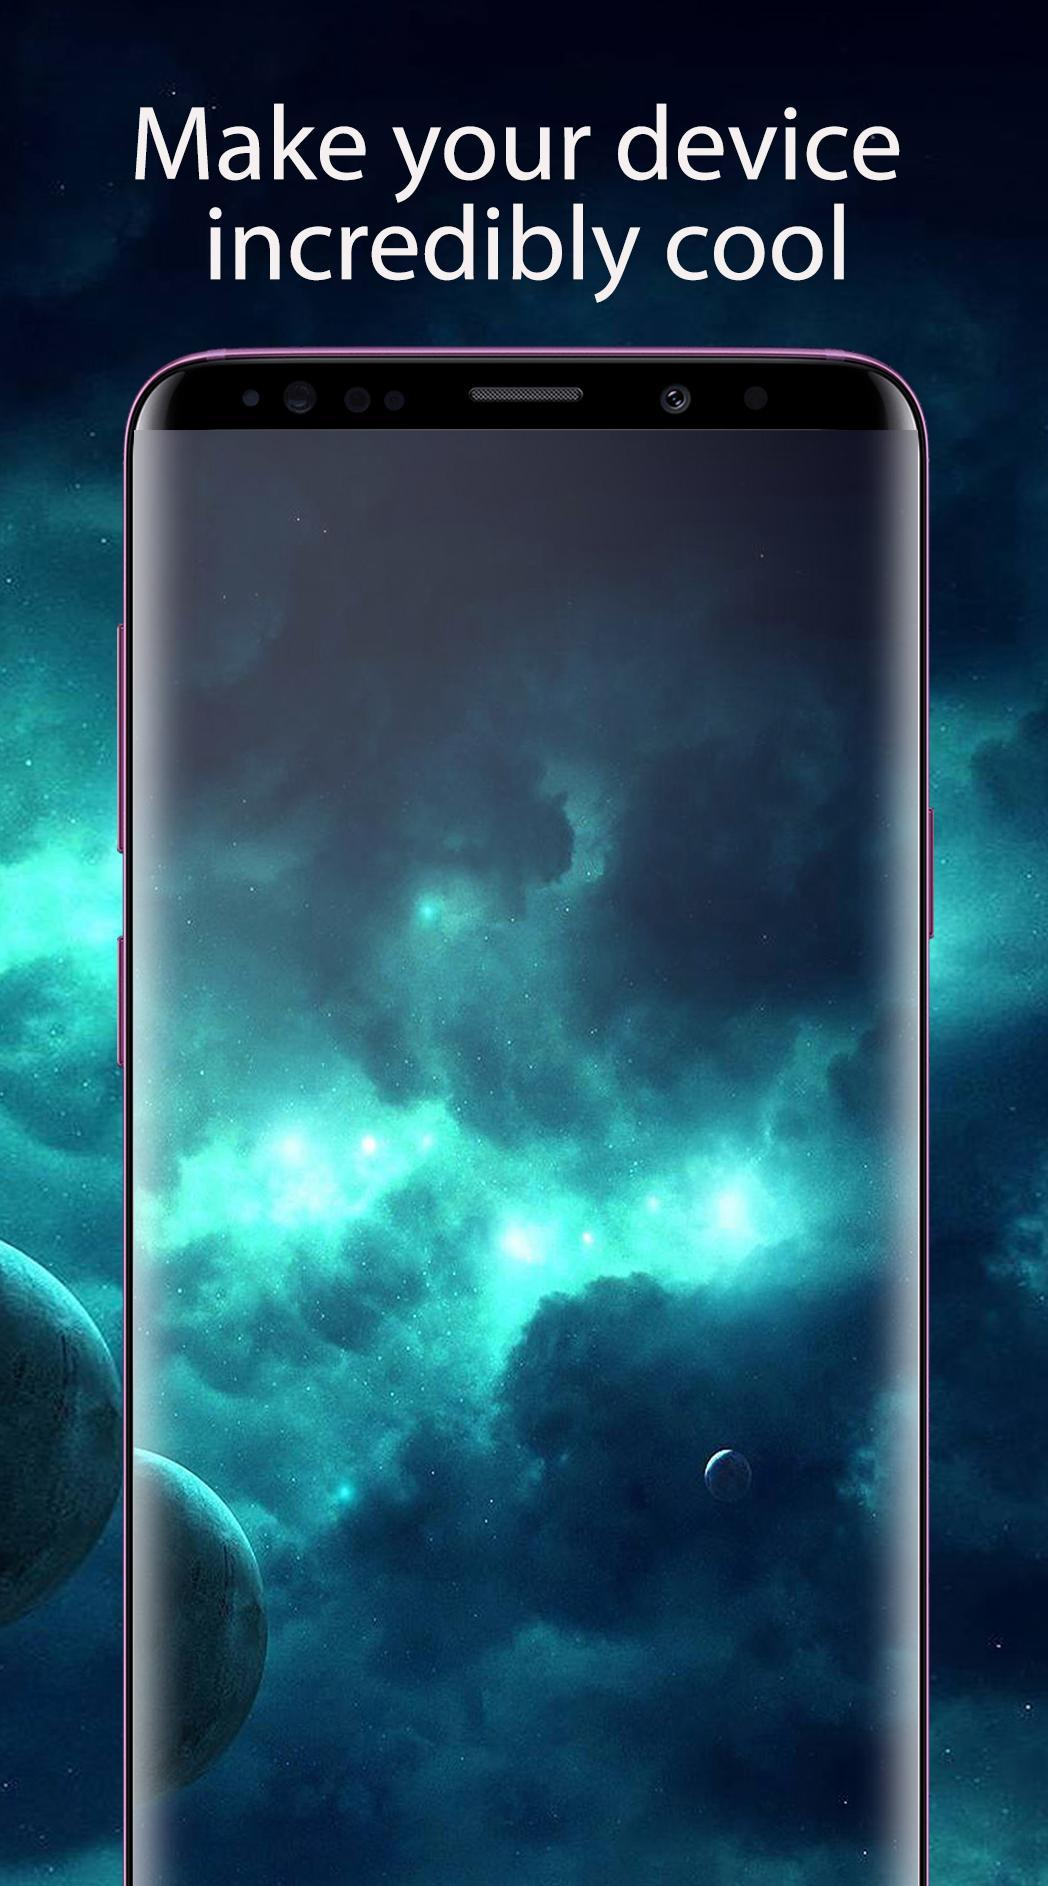 J5 J7 Pro Wallpapers 2018 For Android Apk Download